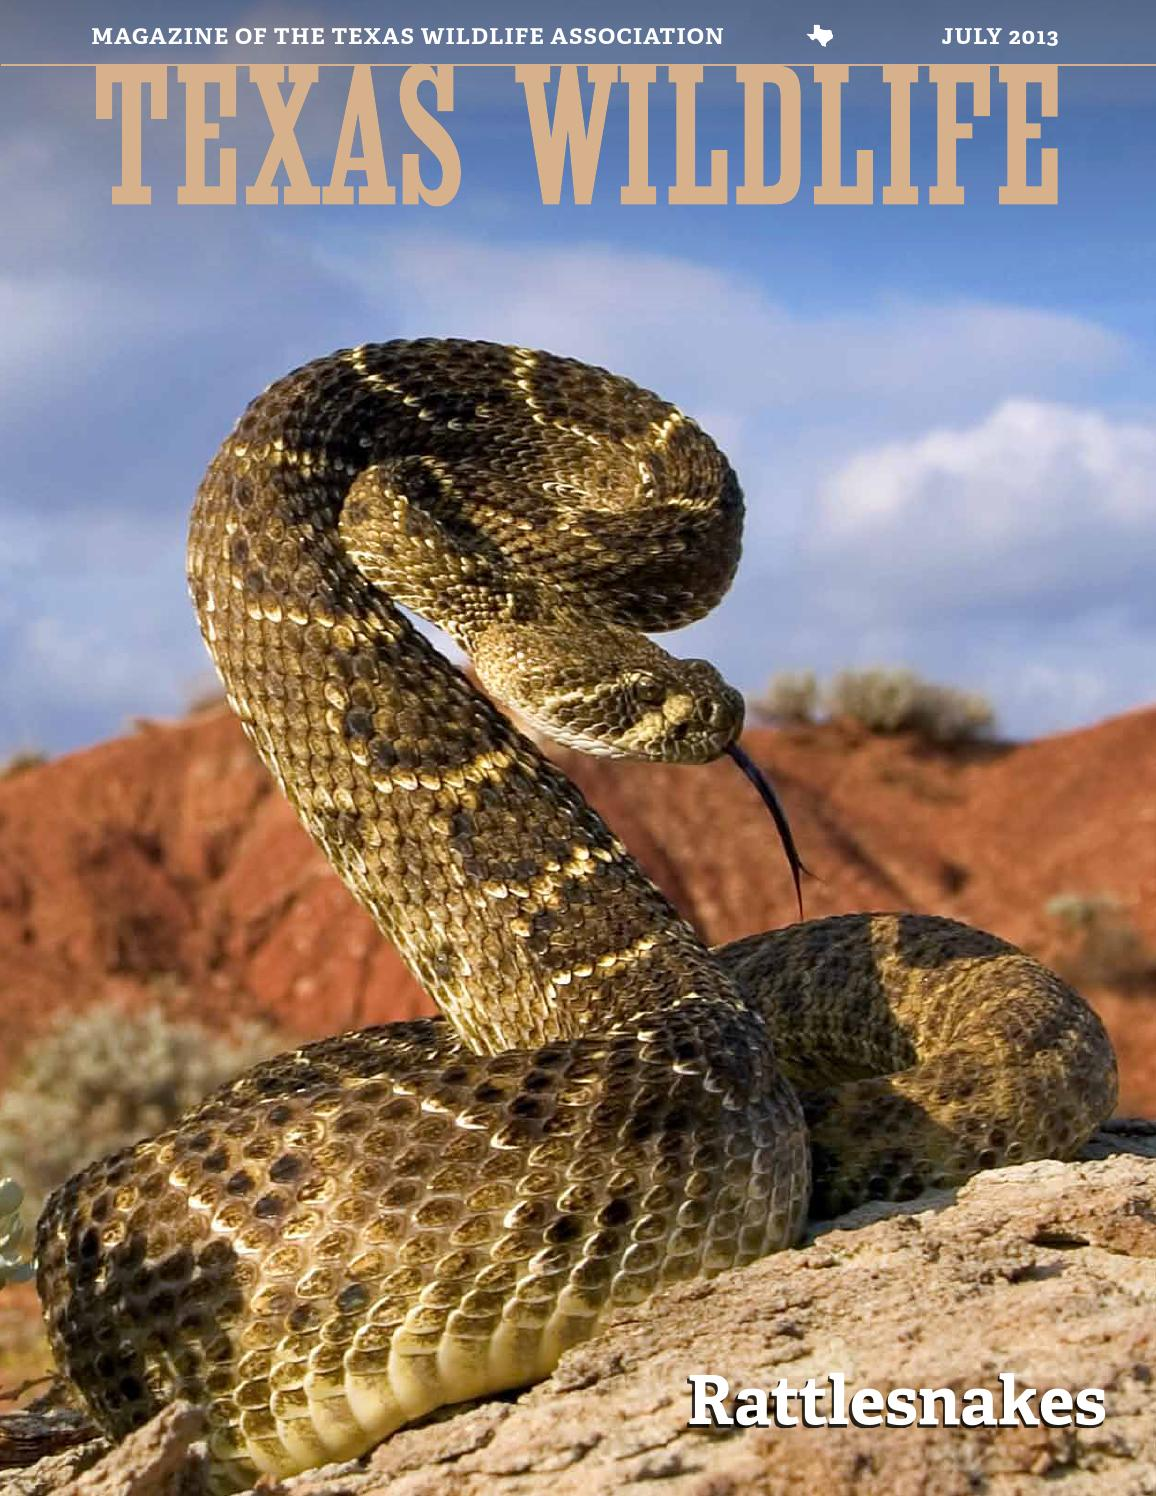 The One and Only Western Diamondback Rattlesnake Road Warrior